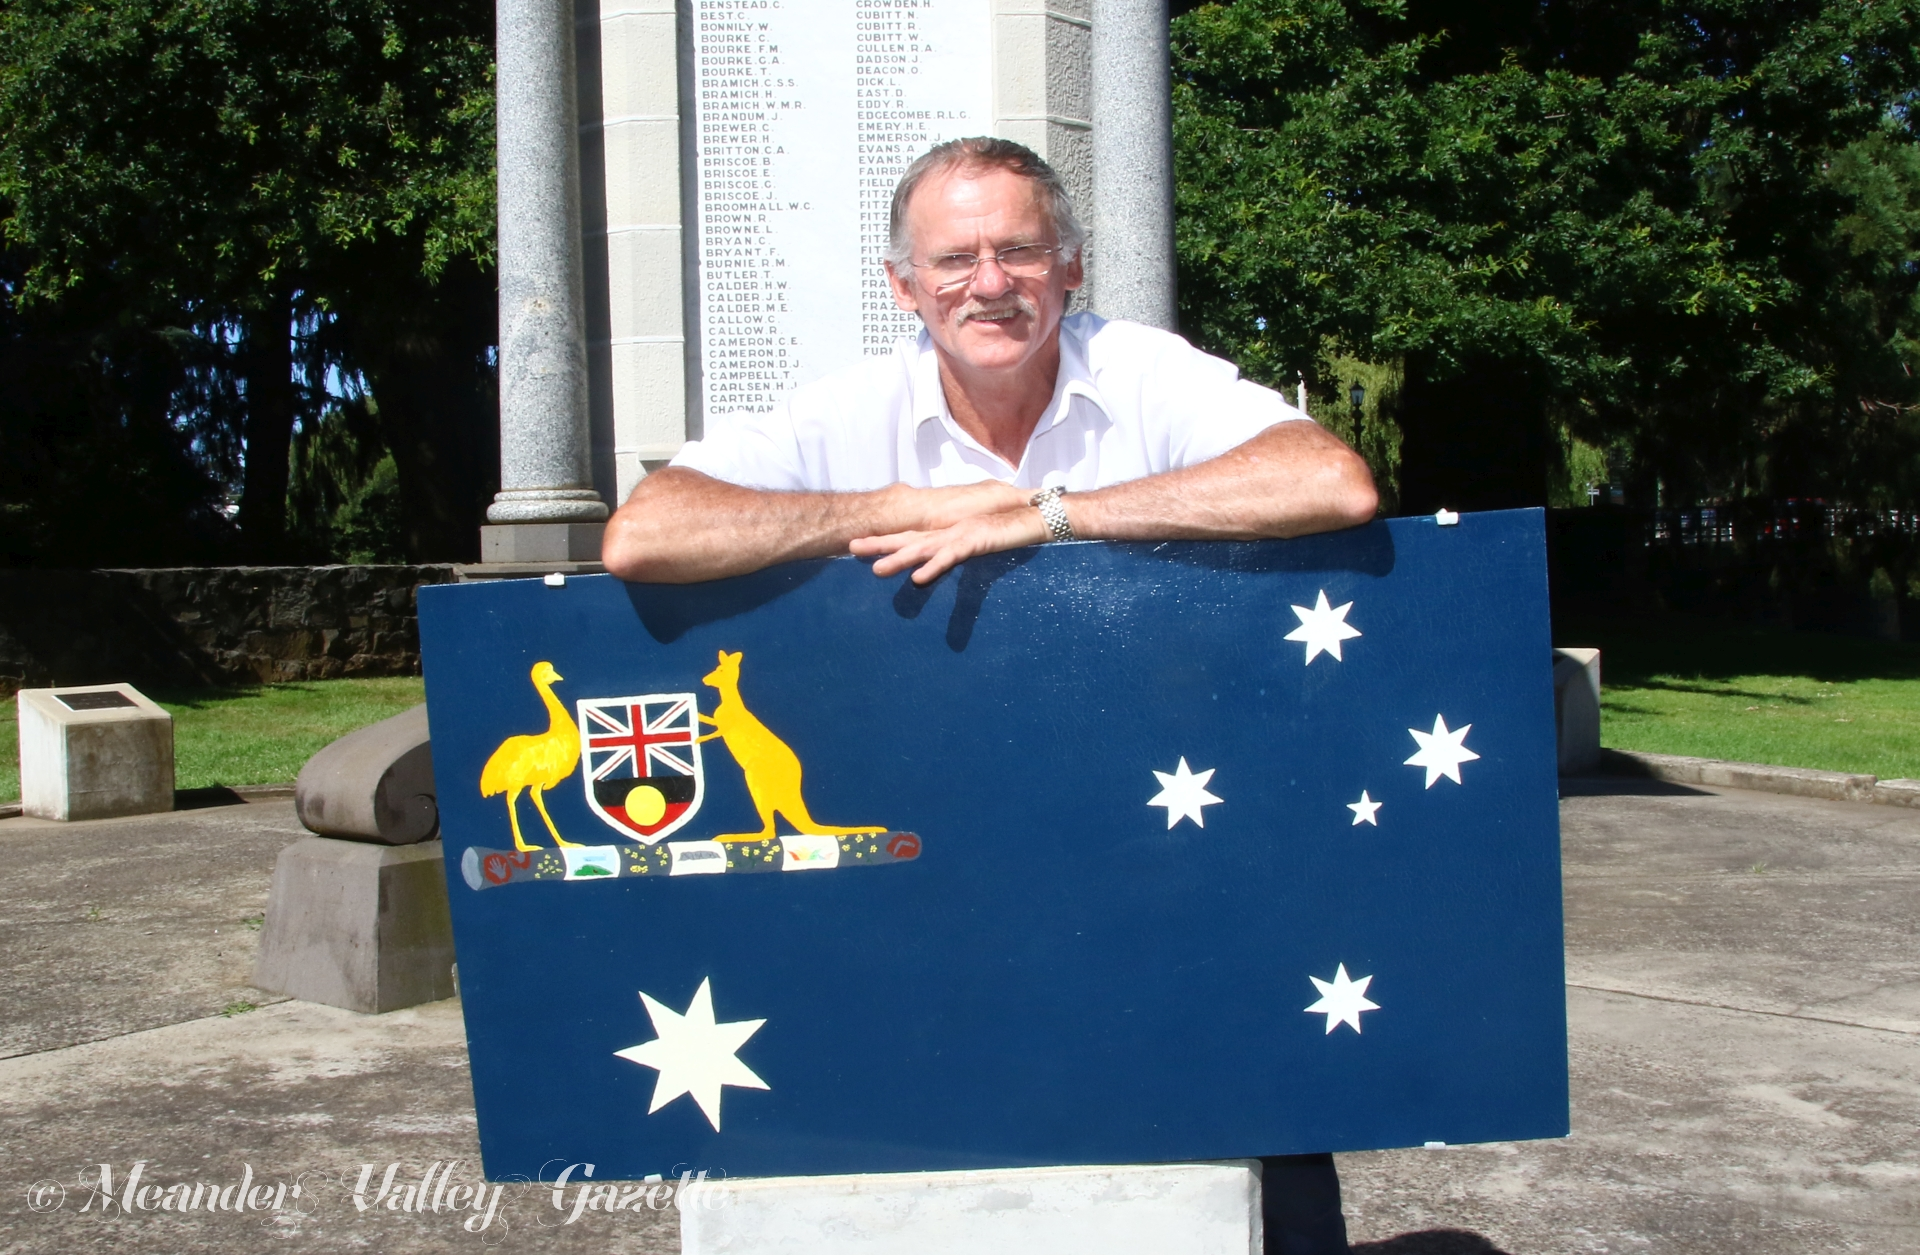 Peter Jago pictured with his design for the Australian flag